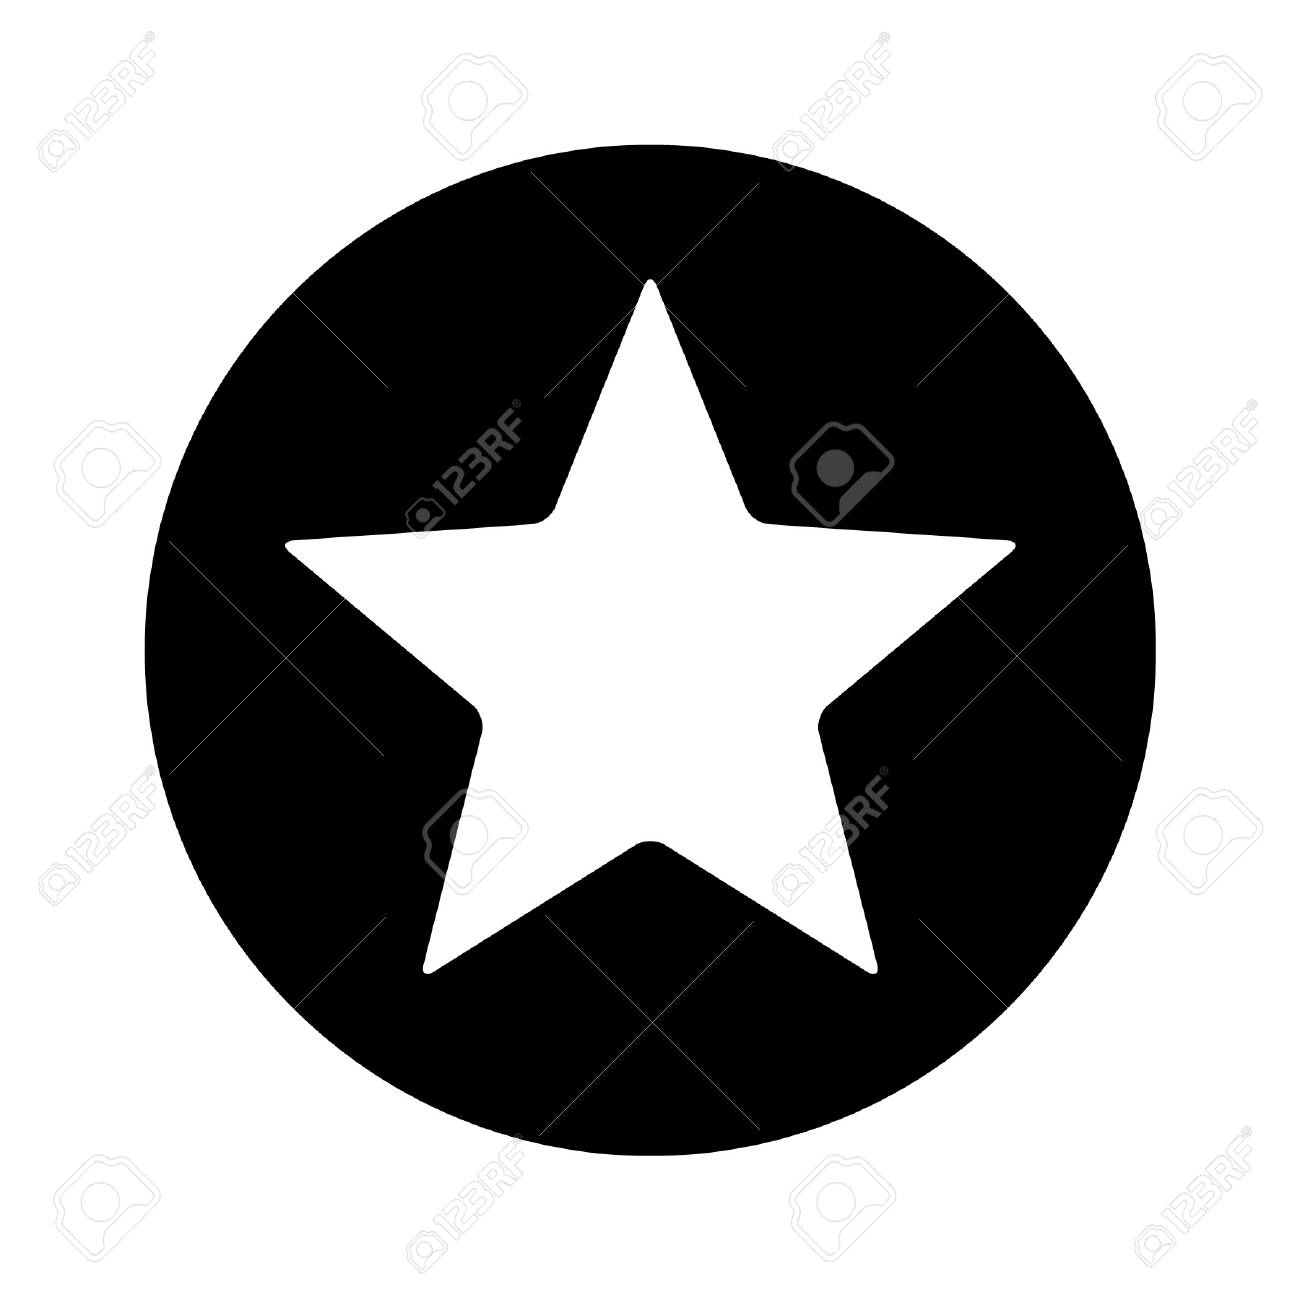 Star Inside Circle Flat Icon For Apps And Websites